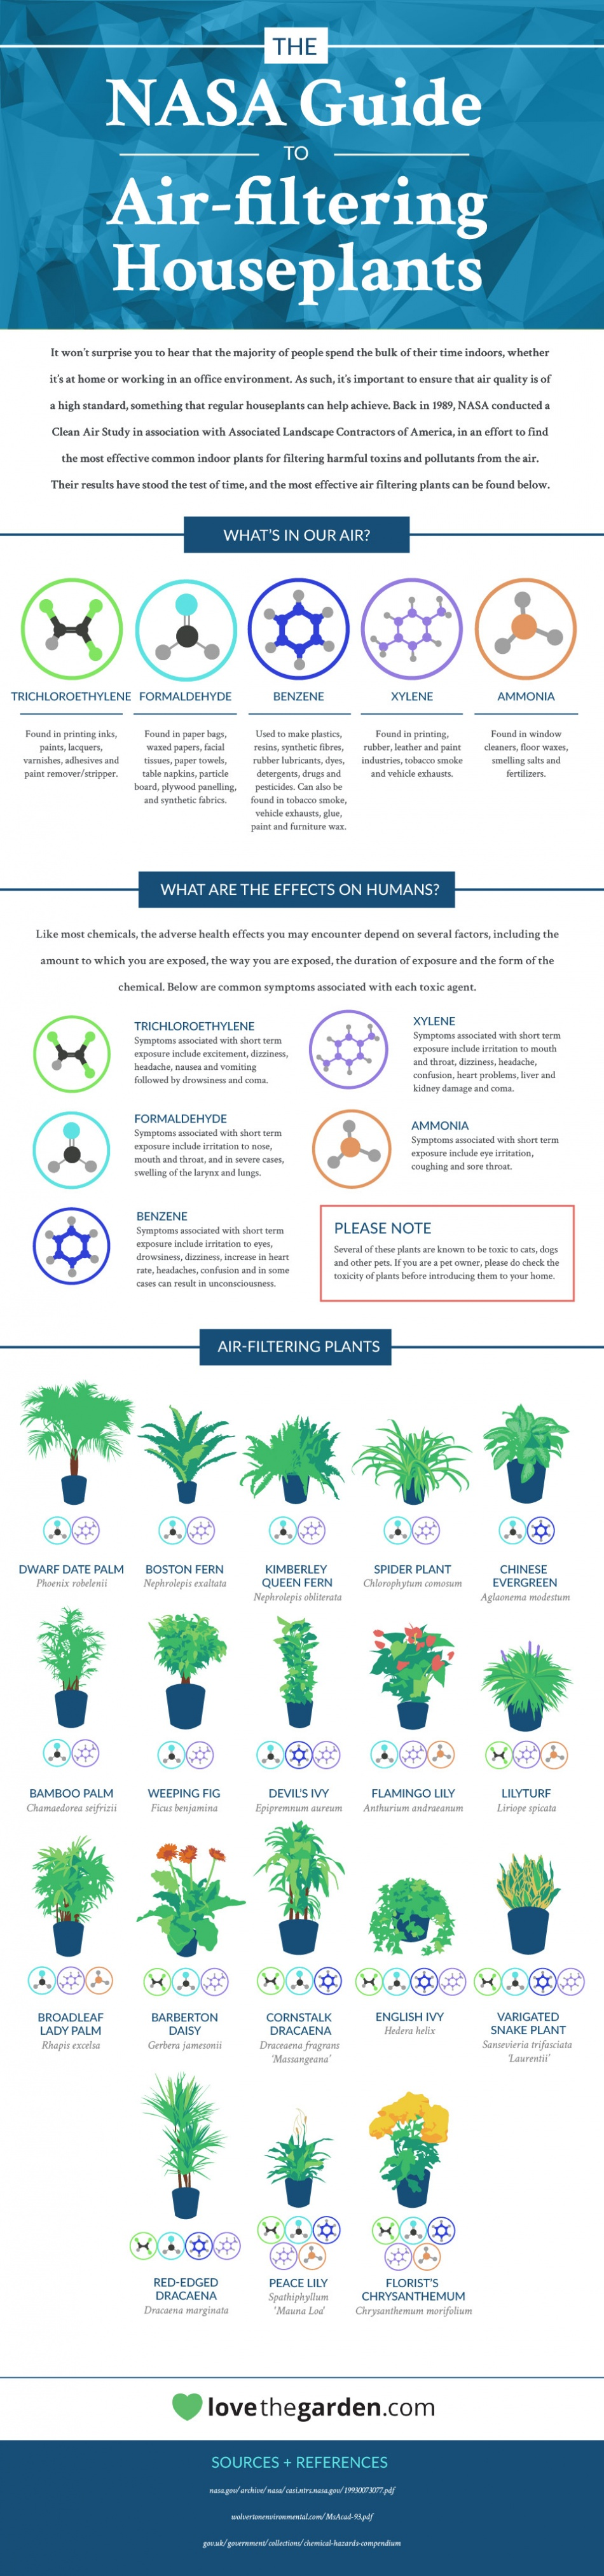 Air filtering plants infographic